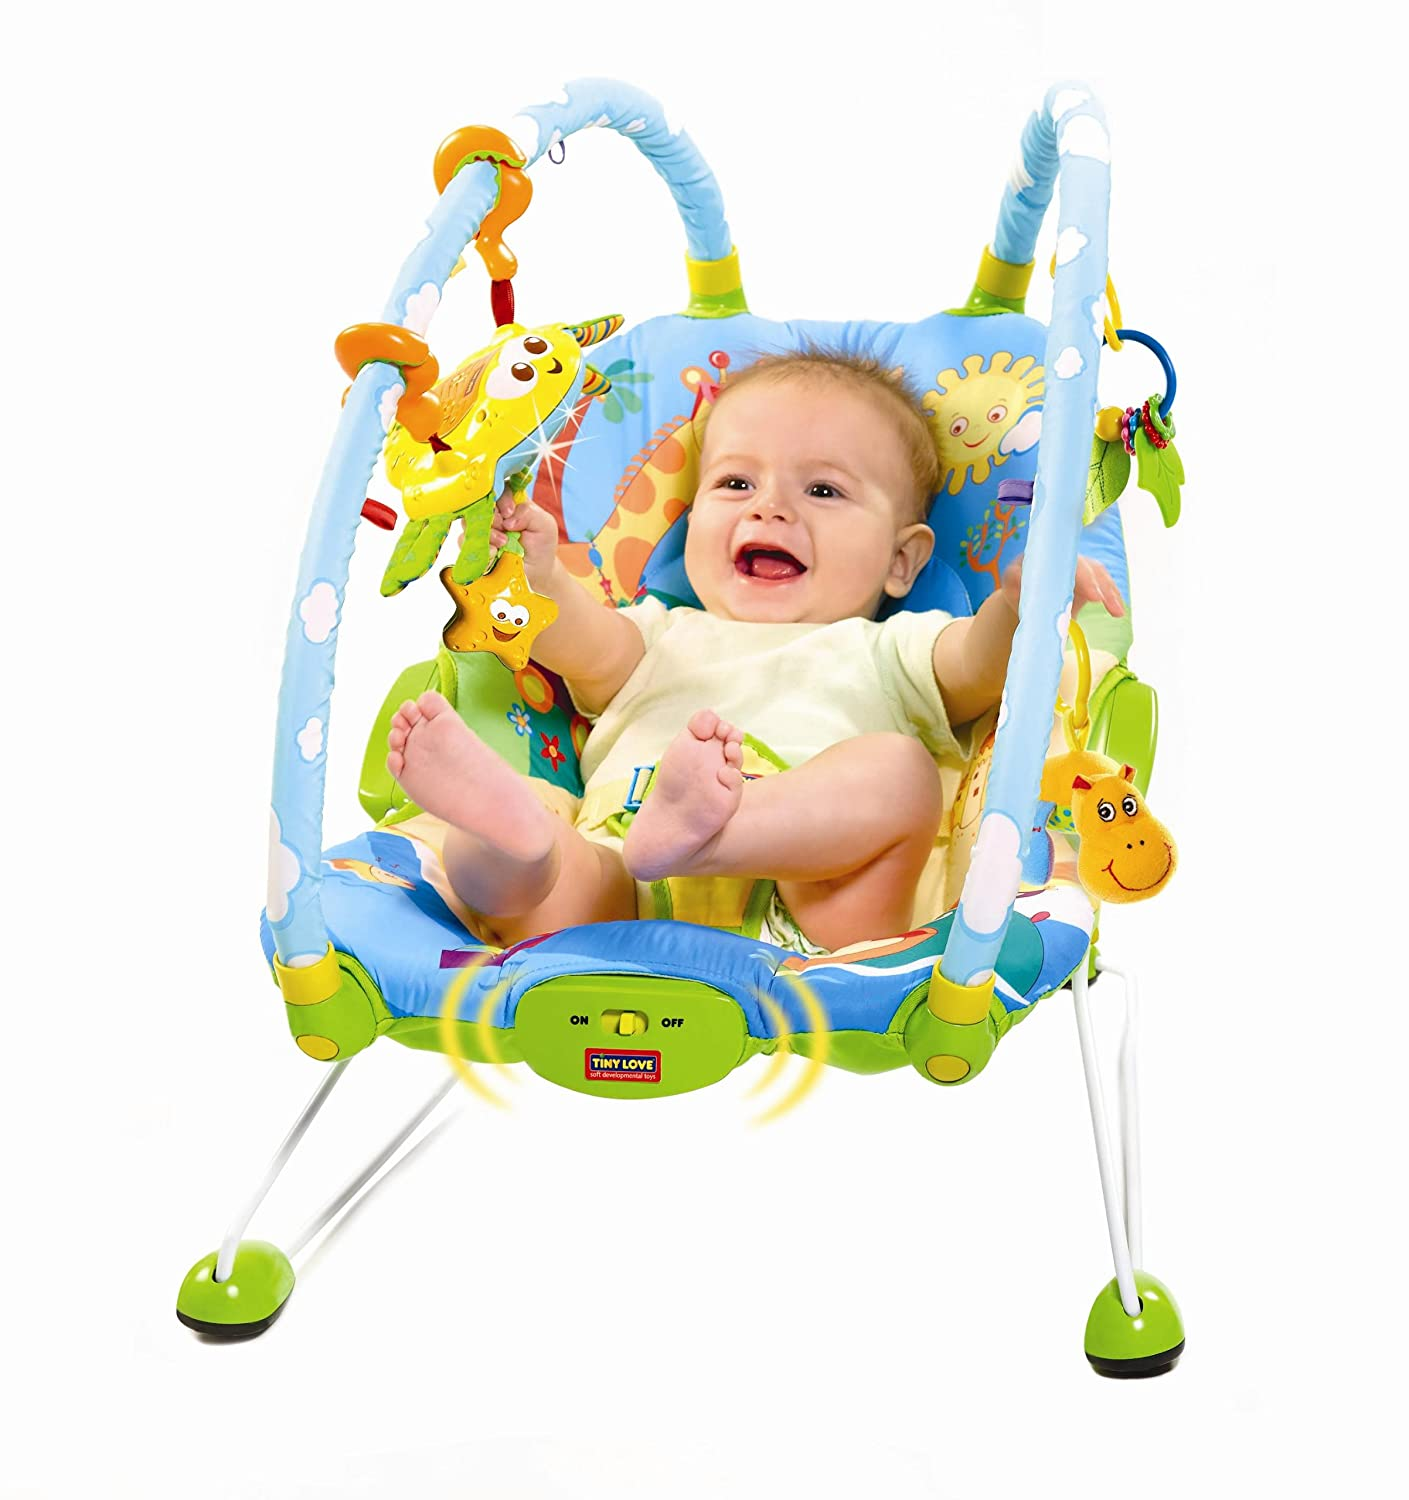 tiny love bouncer chair infant beach gymini blue yellow new free shipping